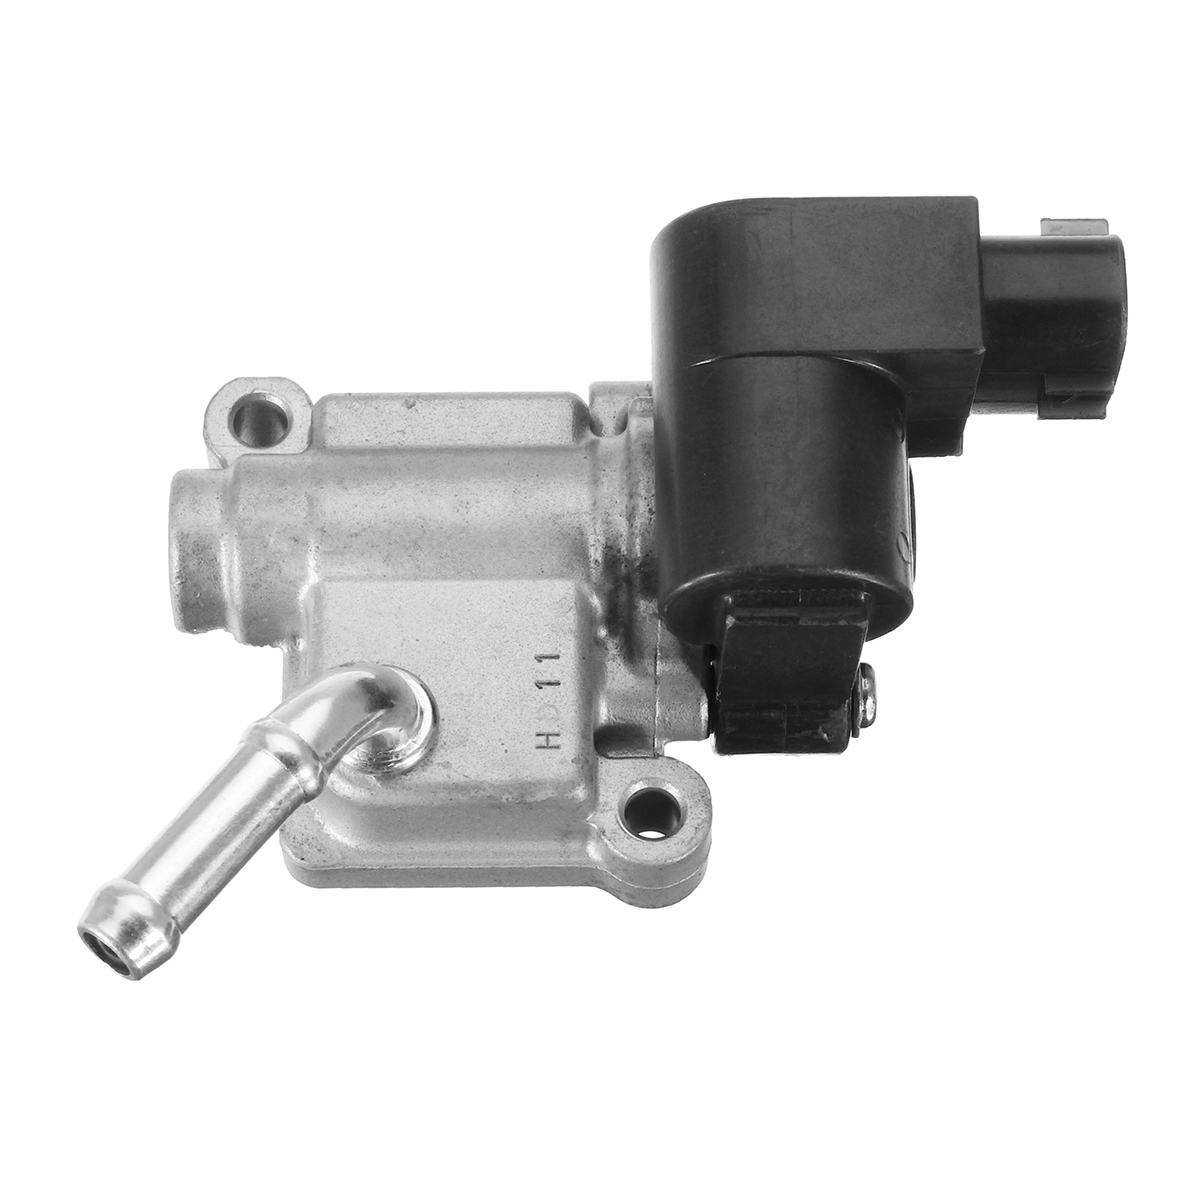 Idle Air Control Valve 16022-PRB-A01 For Honda Civic Si 2.0 Acura RSX Type-S